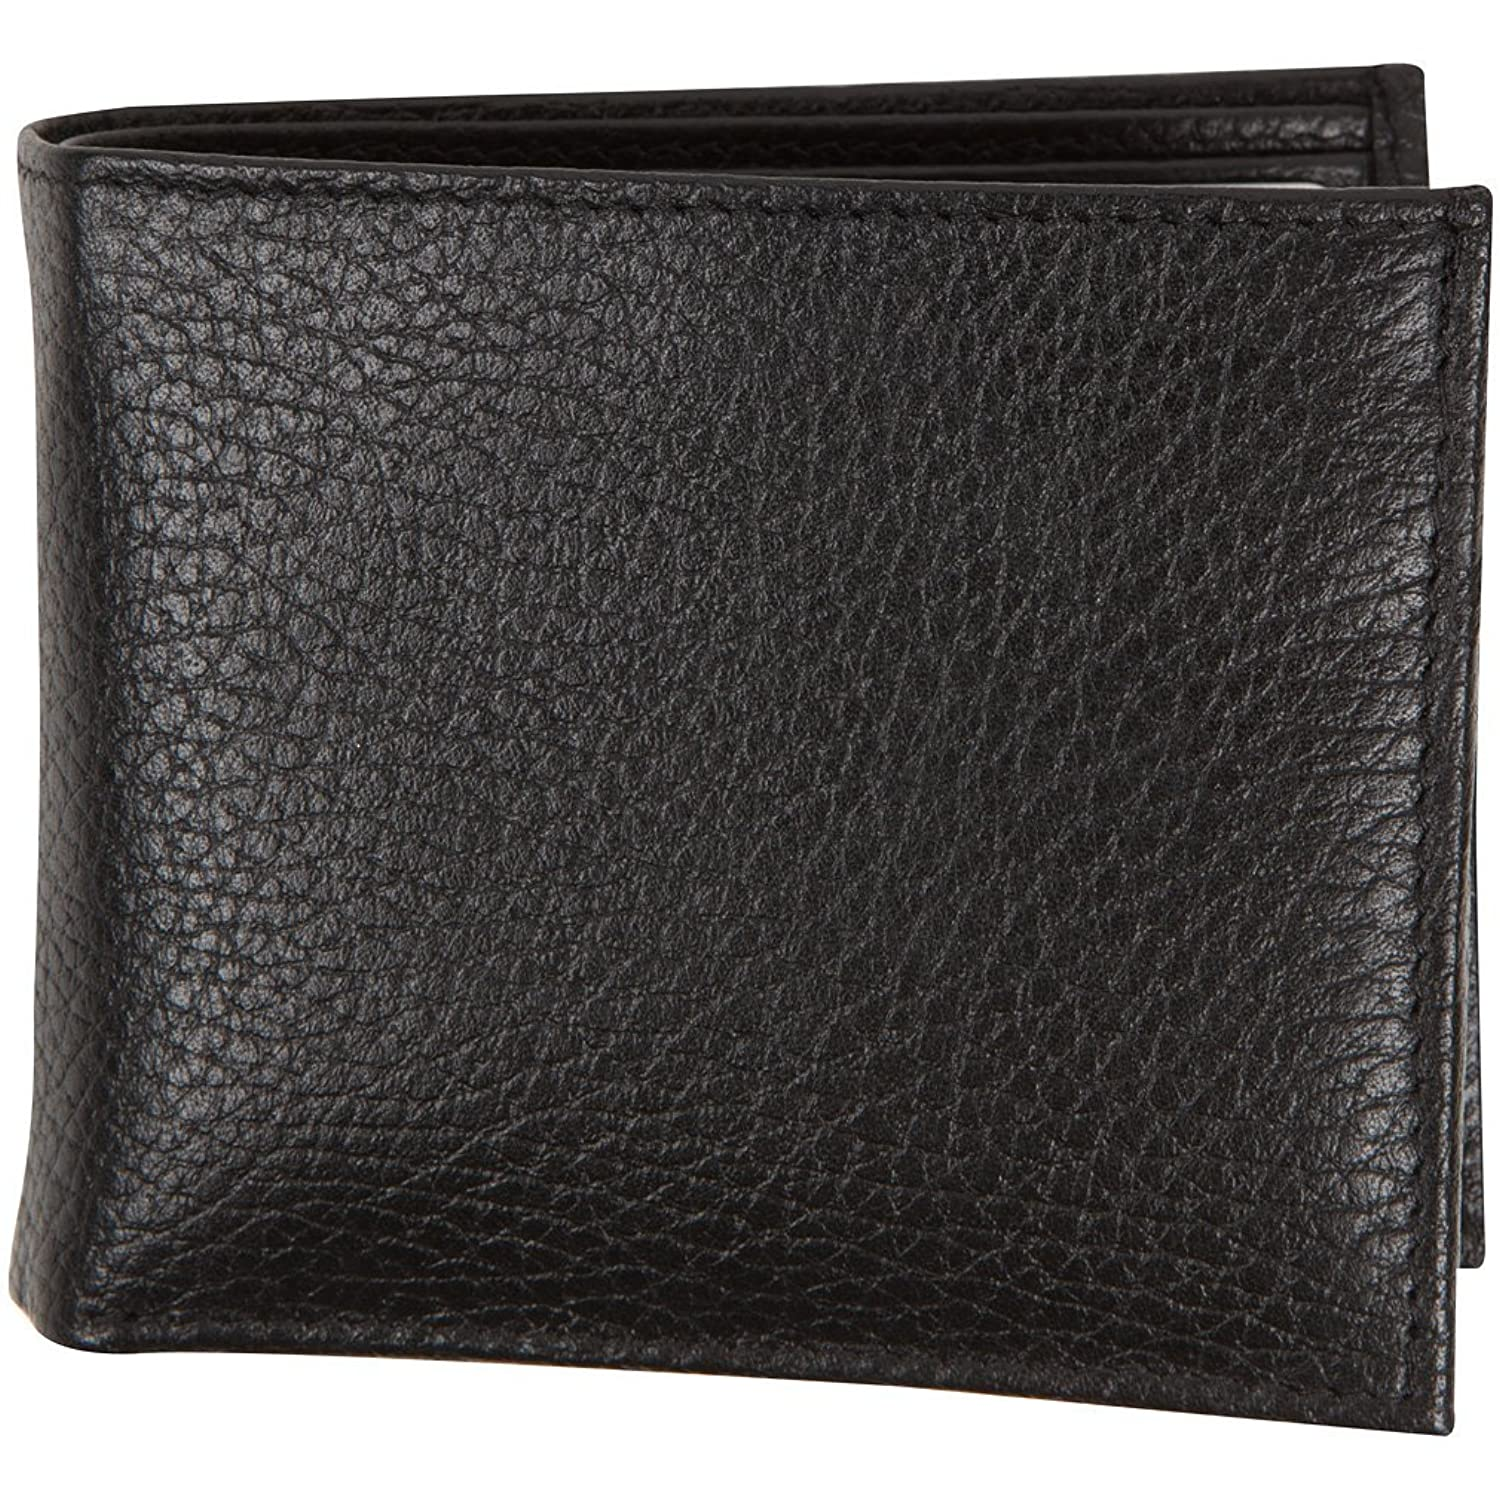 Access Denied Mens Leather RFID Blocking Wallet 14 Card Slots